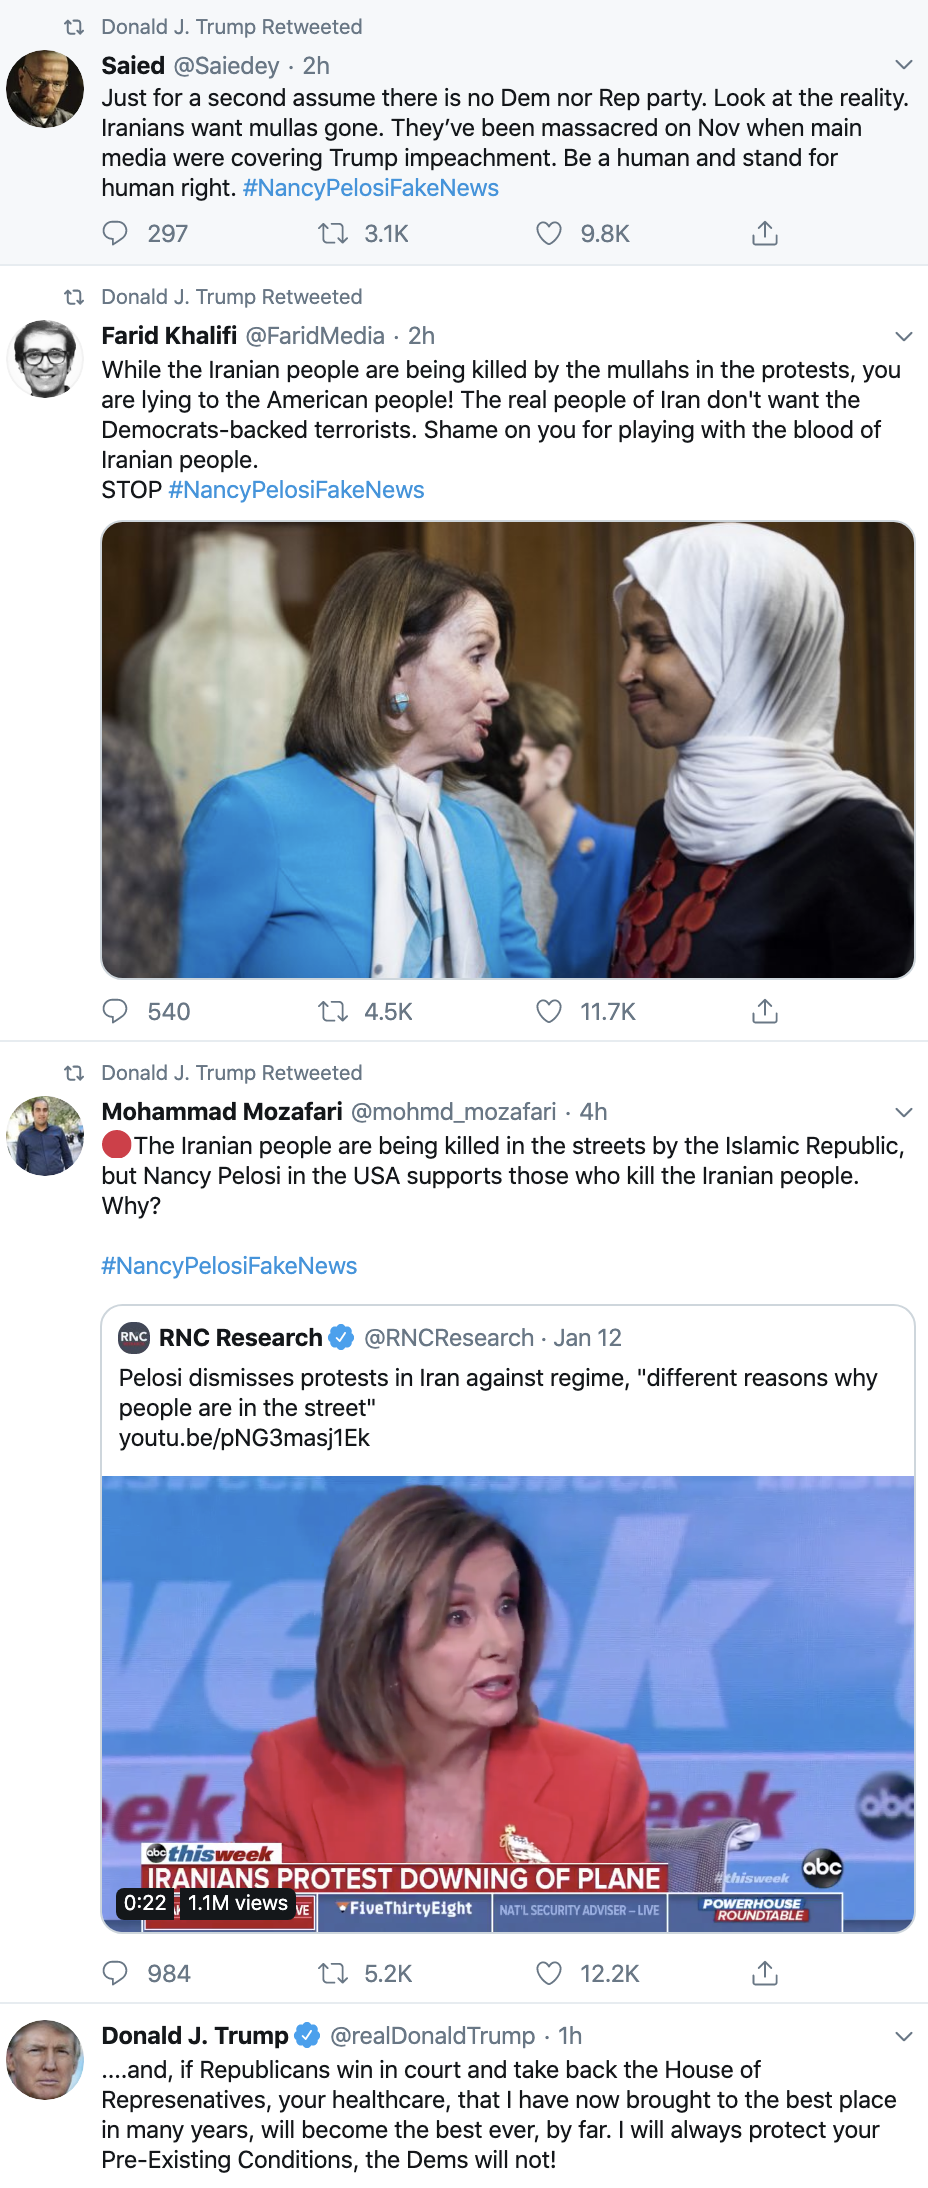 Screen-Shot-2020-01-13-at-9.29.26-AM People Flip Out After Trump Tweets Racist Anti-Muslim Meme Election 2020 Featured Impeachment Religion Top Stories